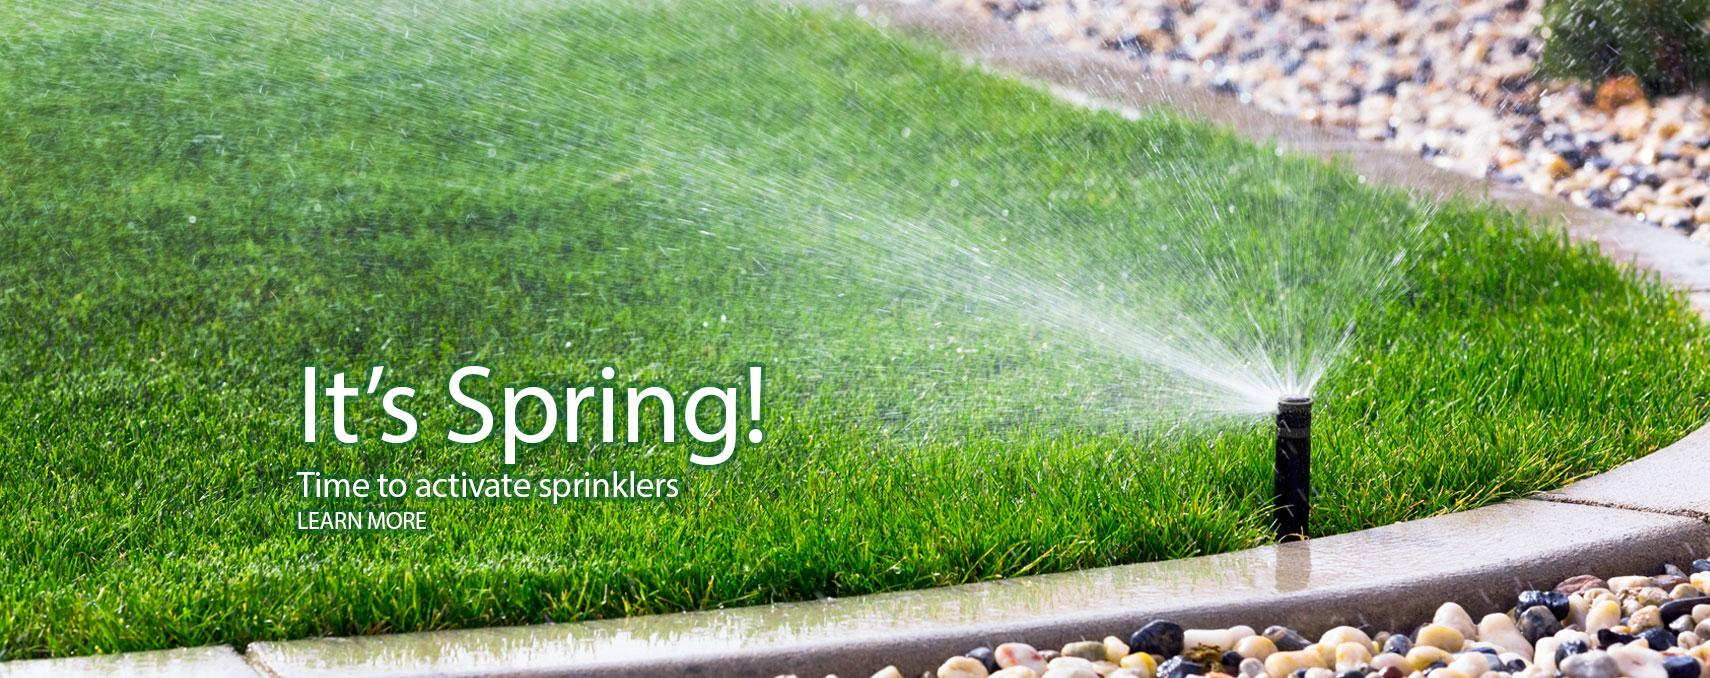 Judson Irrigation Lawn Sprinkler Installation Maintenance Lincoln Omaha Ne